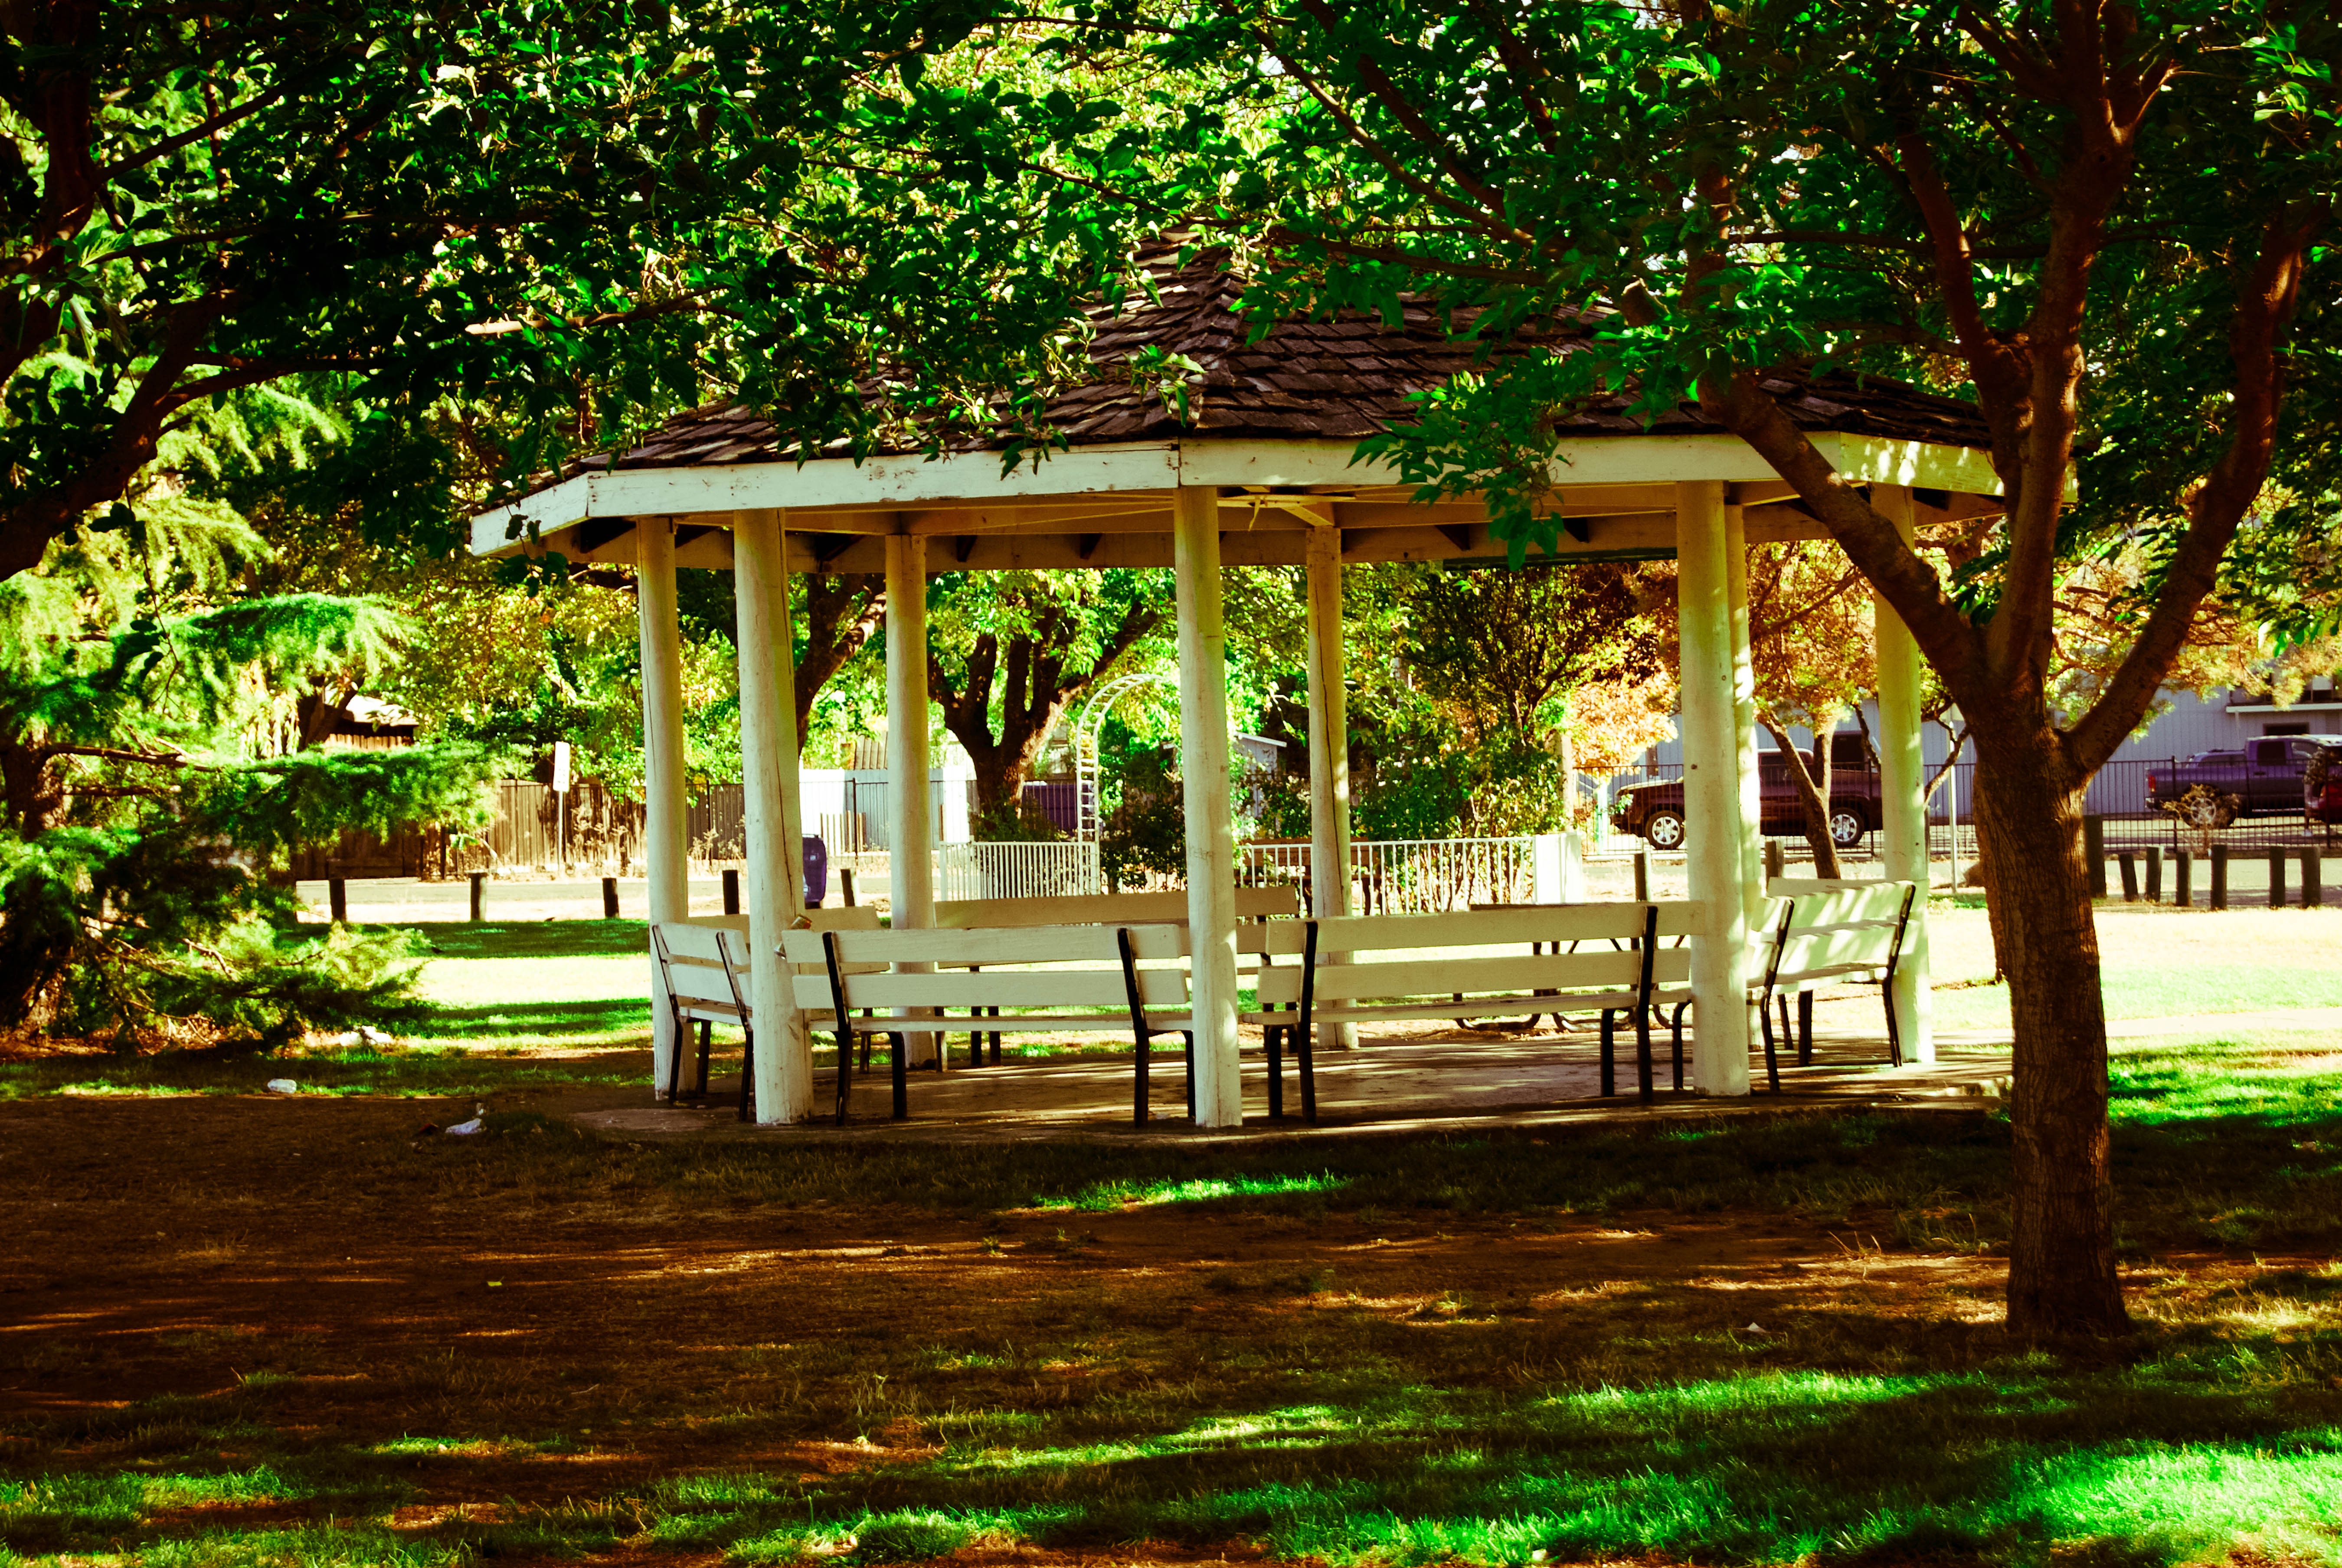 Nice fall day with the gazebo at Austin Park in Clearlake